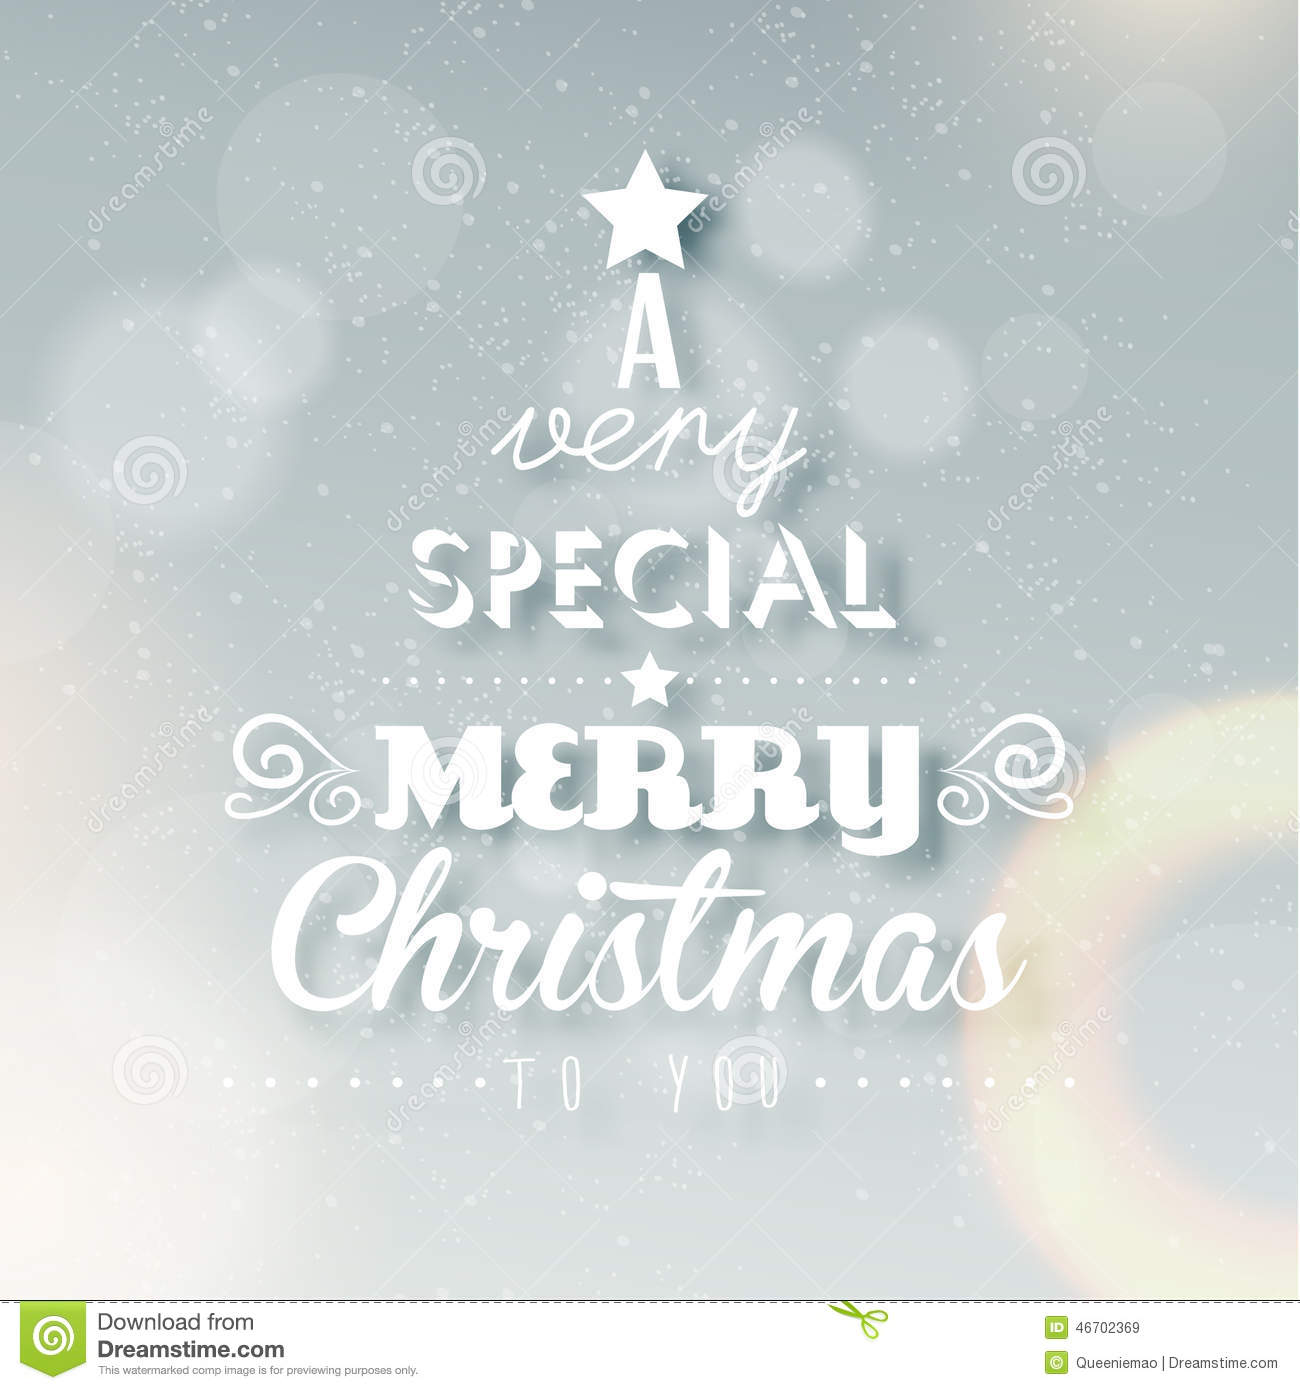 Merry christmas season greetings quote stock illustration download merry christmas season greetings quote stock illustration illustration of decor merry 46702369 m4hsunfo